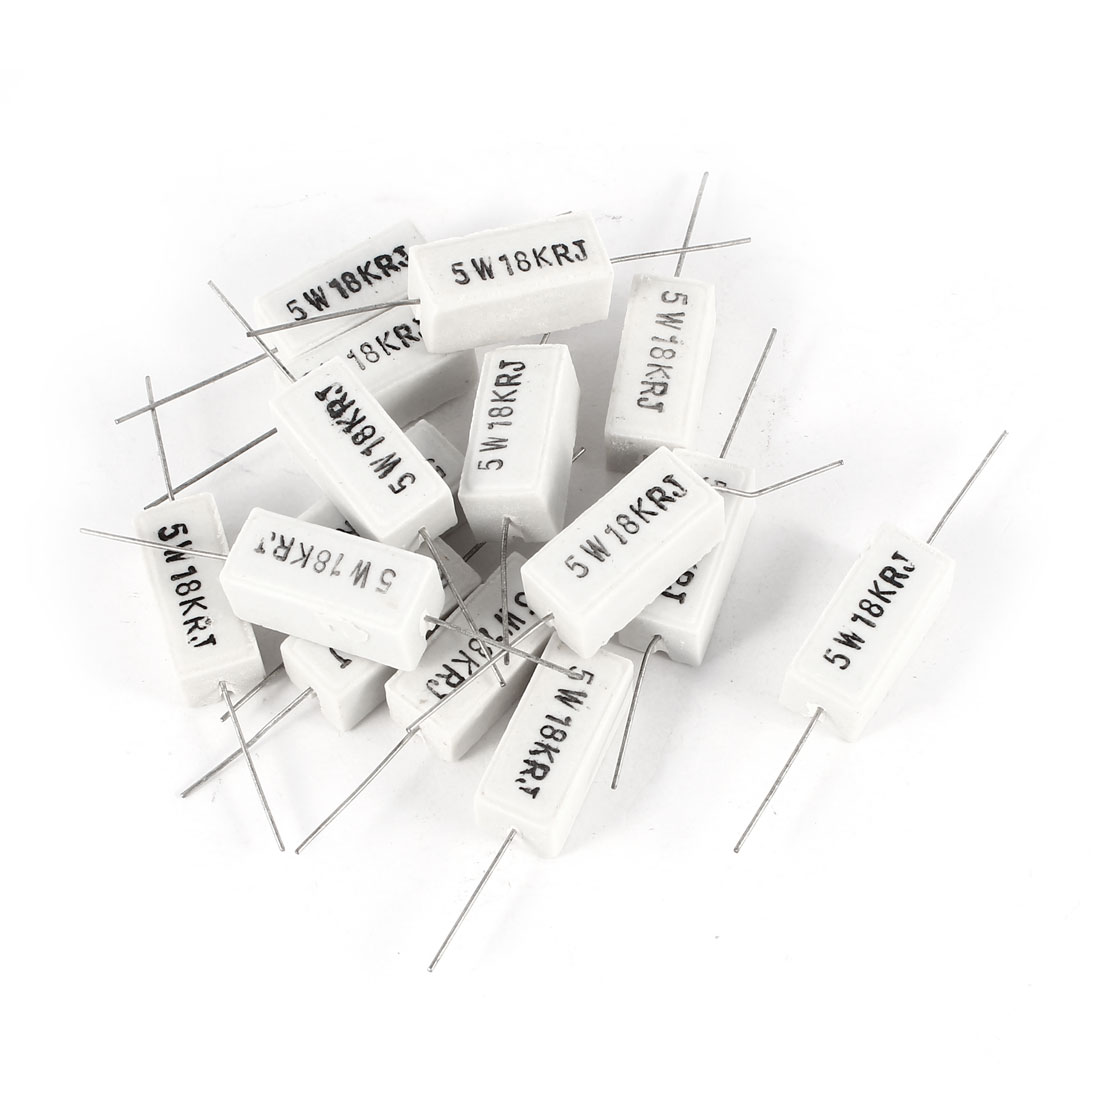 15 Pcs Axial Lead 5W Watt 18K Ohm 5% Ceramic Cement Power Resistor White